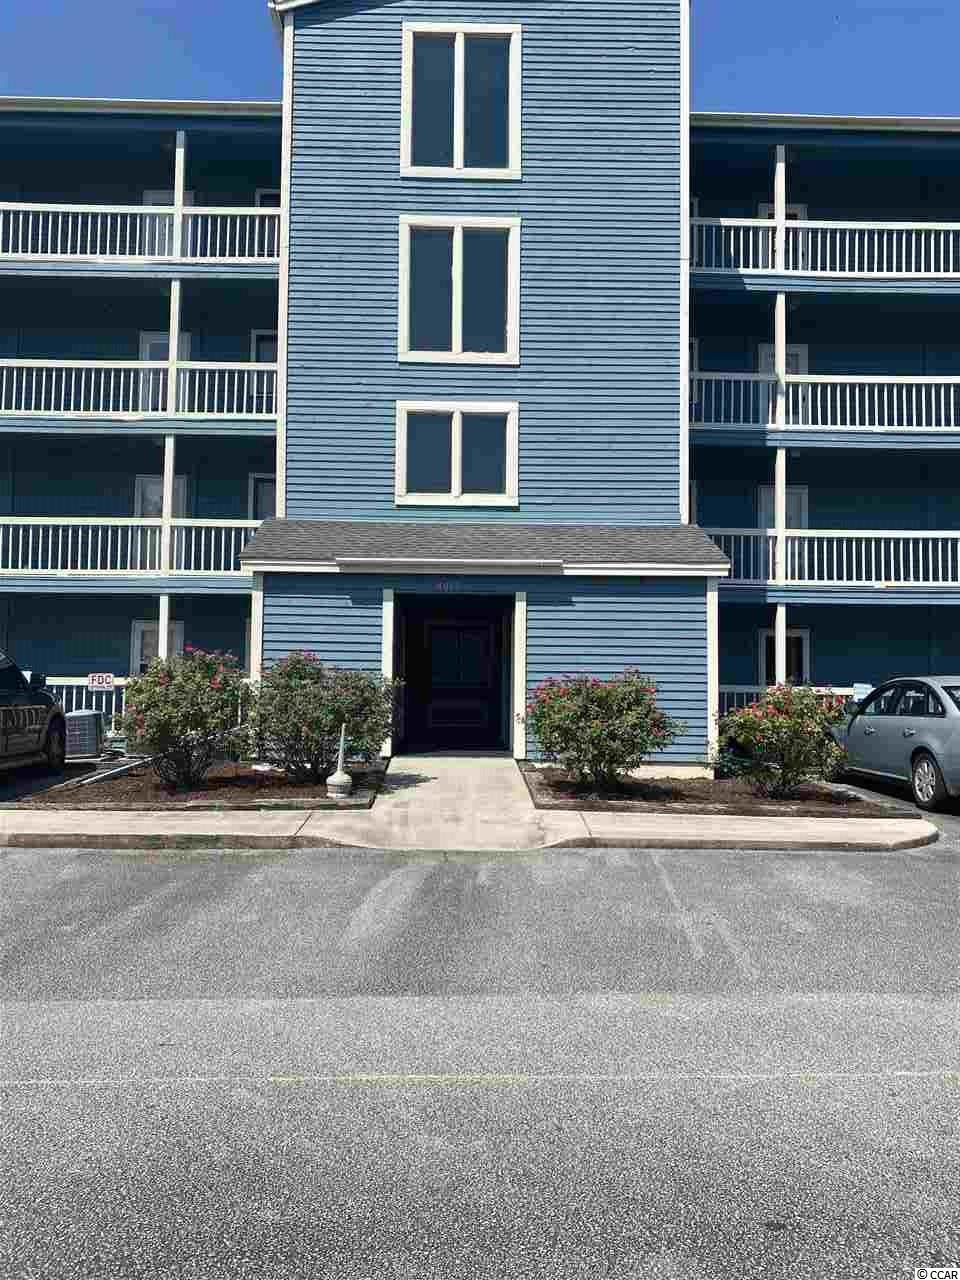 Newly renovated condo nestled in the quaint fishing village of Little River. Eagle Lake is centrally located close to the beautiful beaches of North and South Carolina and minutes away from award winning dining, golf and entertainment. This condo has been completely remodeled with all new flooring and paint (including ceilings) throughout! New HVAC, hot water heater, dishwasher, stove, microwave, sink, garbage disposal, counter tops, cabinets, bathroom vanities, and doors. It is better than brand new!  This is a second floor unit but the building does have an elevator. Truly a hidden gem - don't miss out!